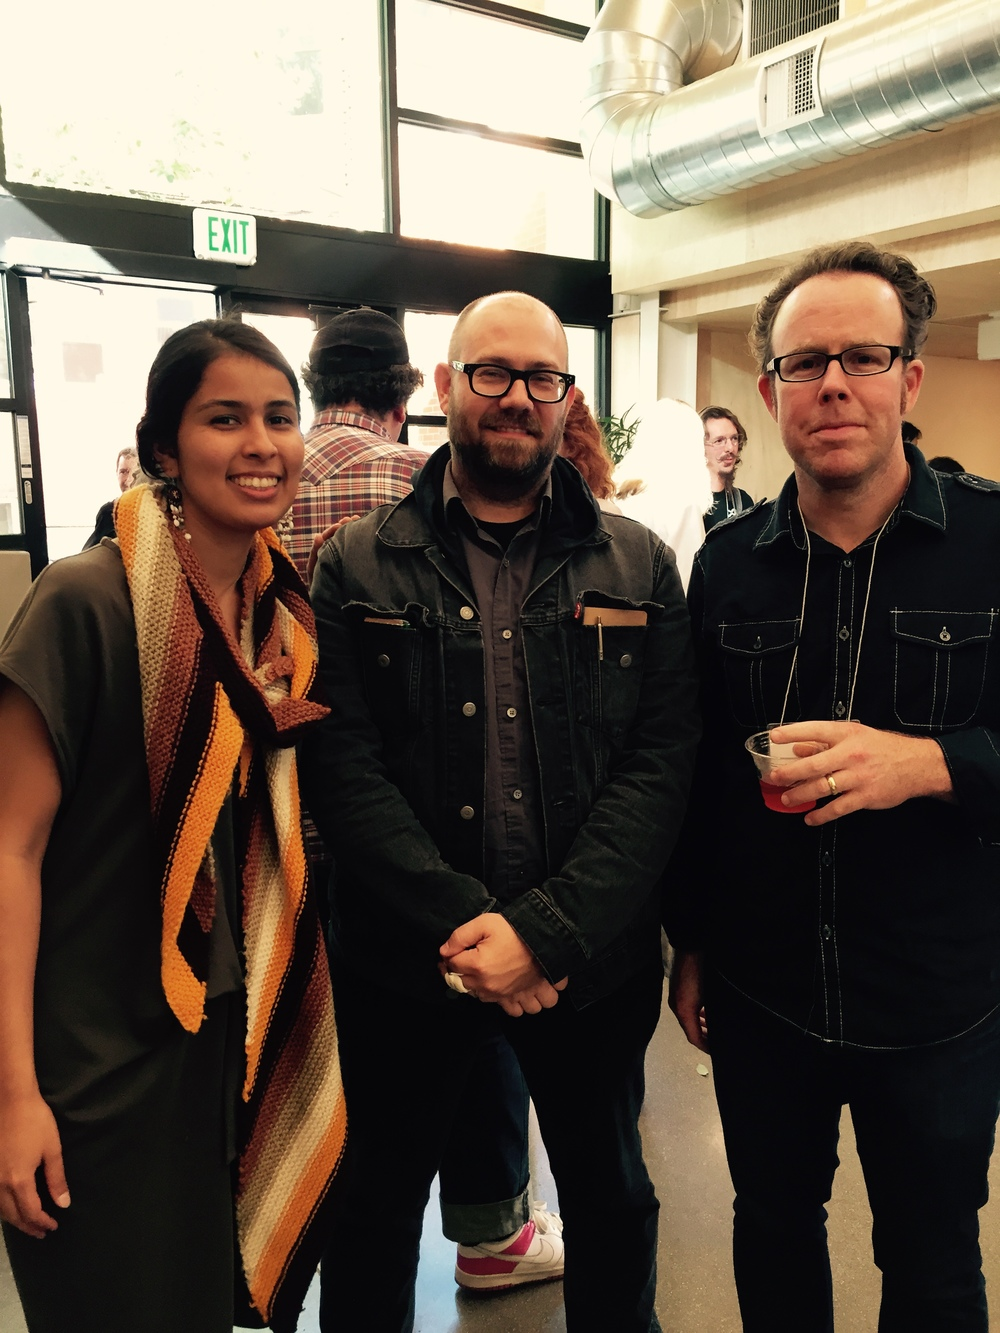 Maryam Parhizkar, David James Miller, & James Belflower